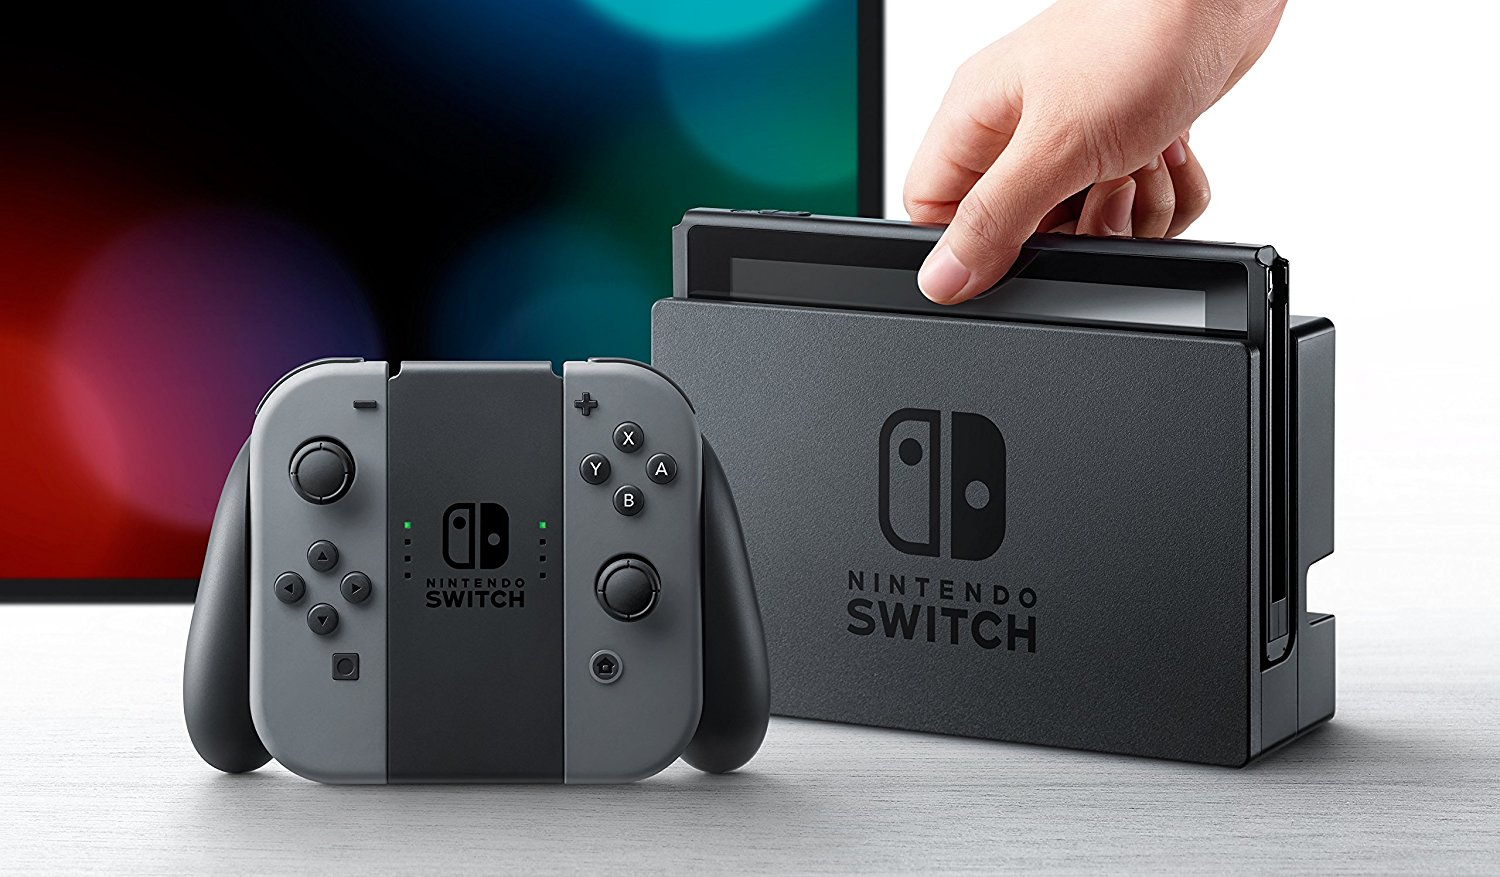 Amazon Prime Day deals for the Nintendo Switch console, games and accessories